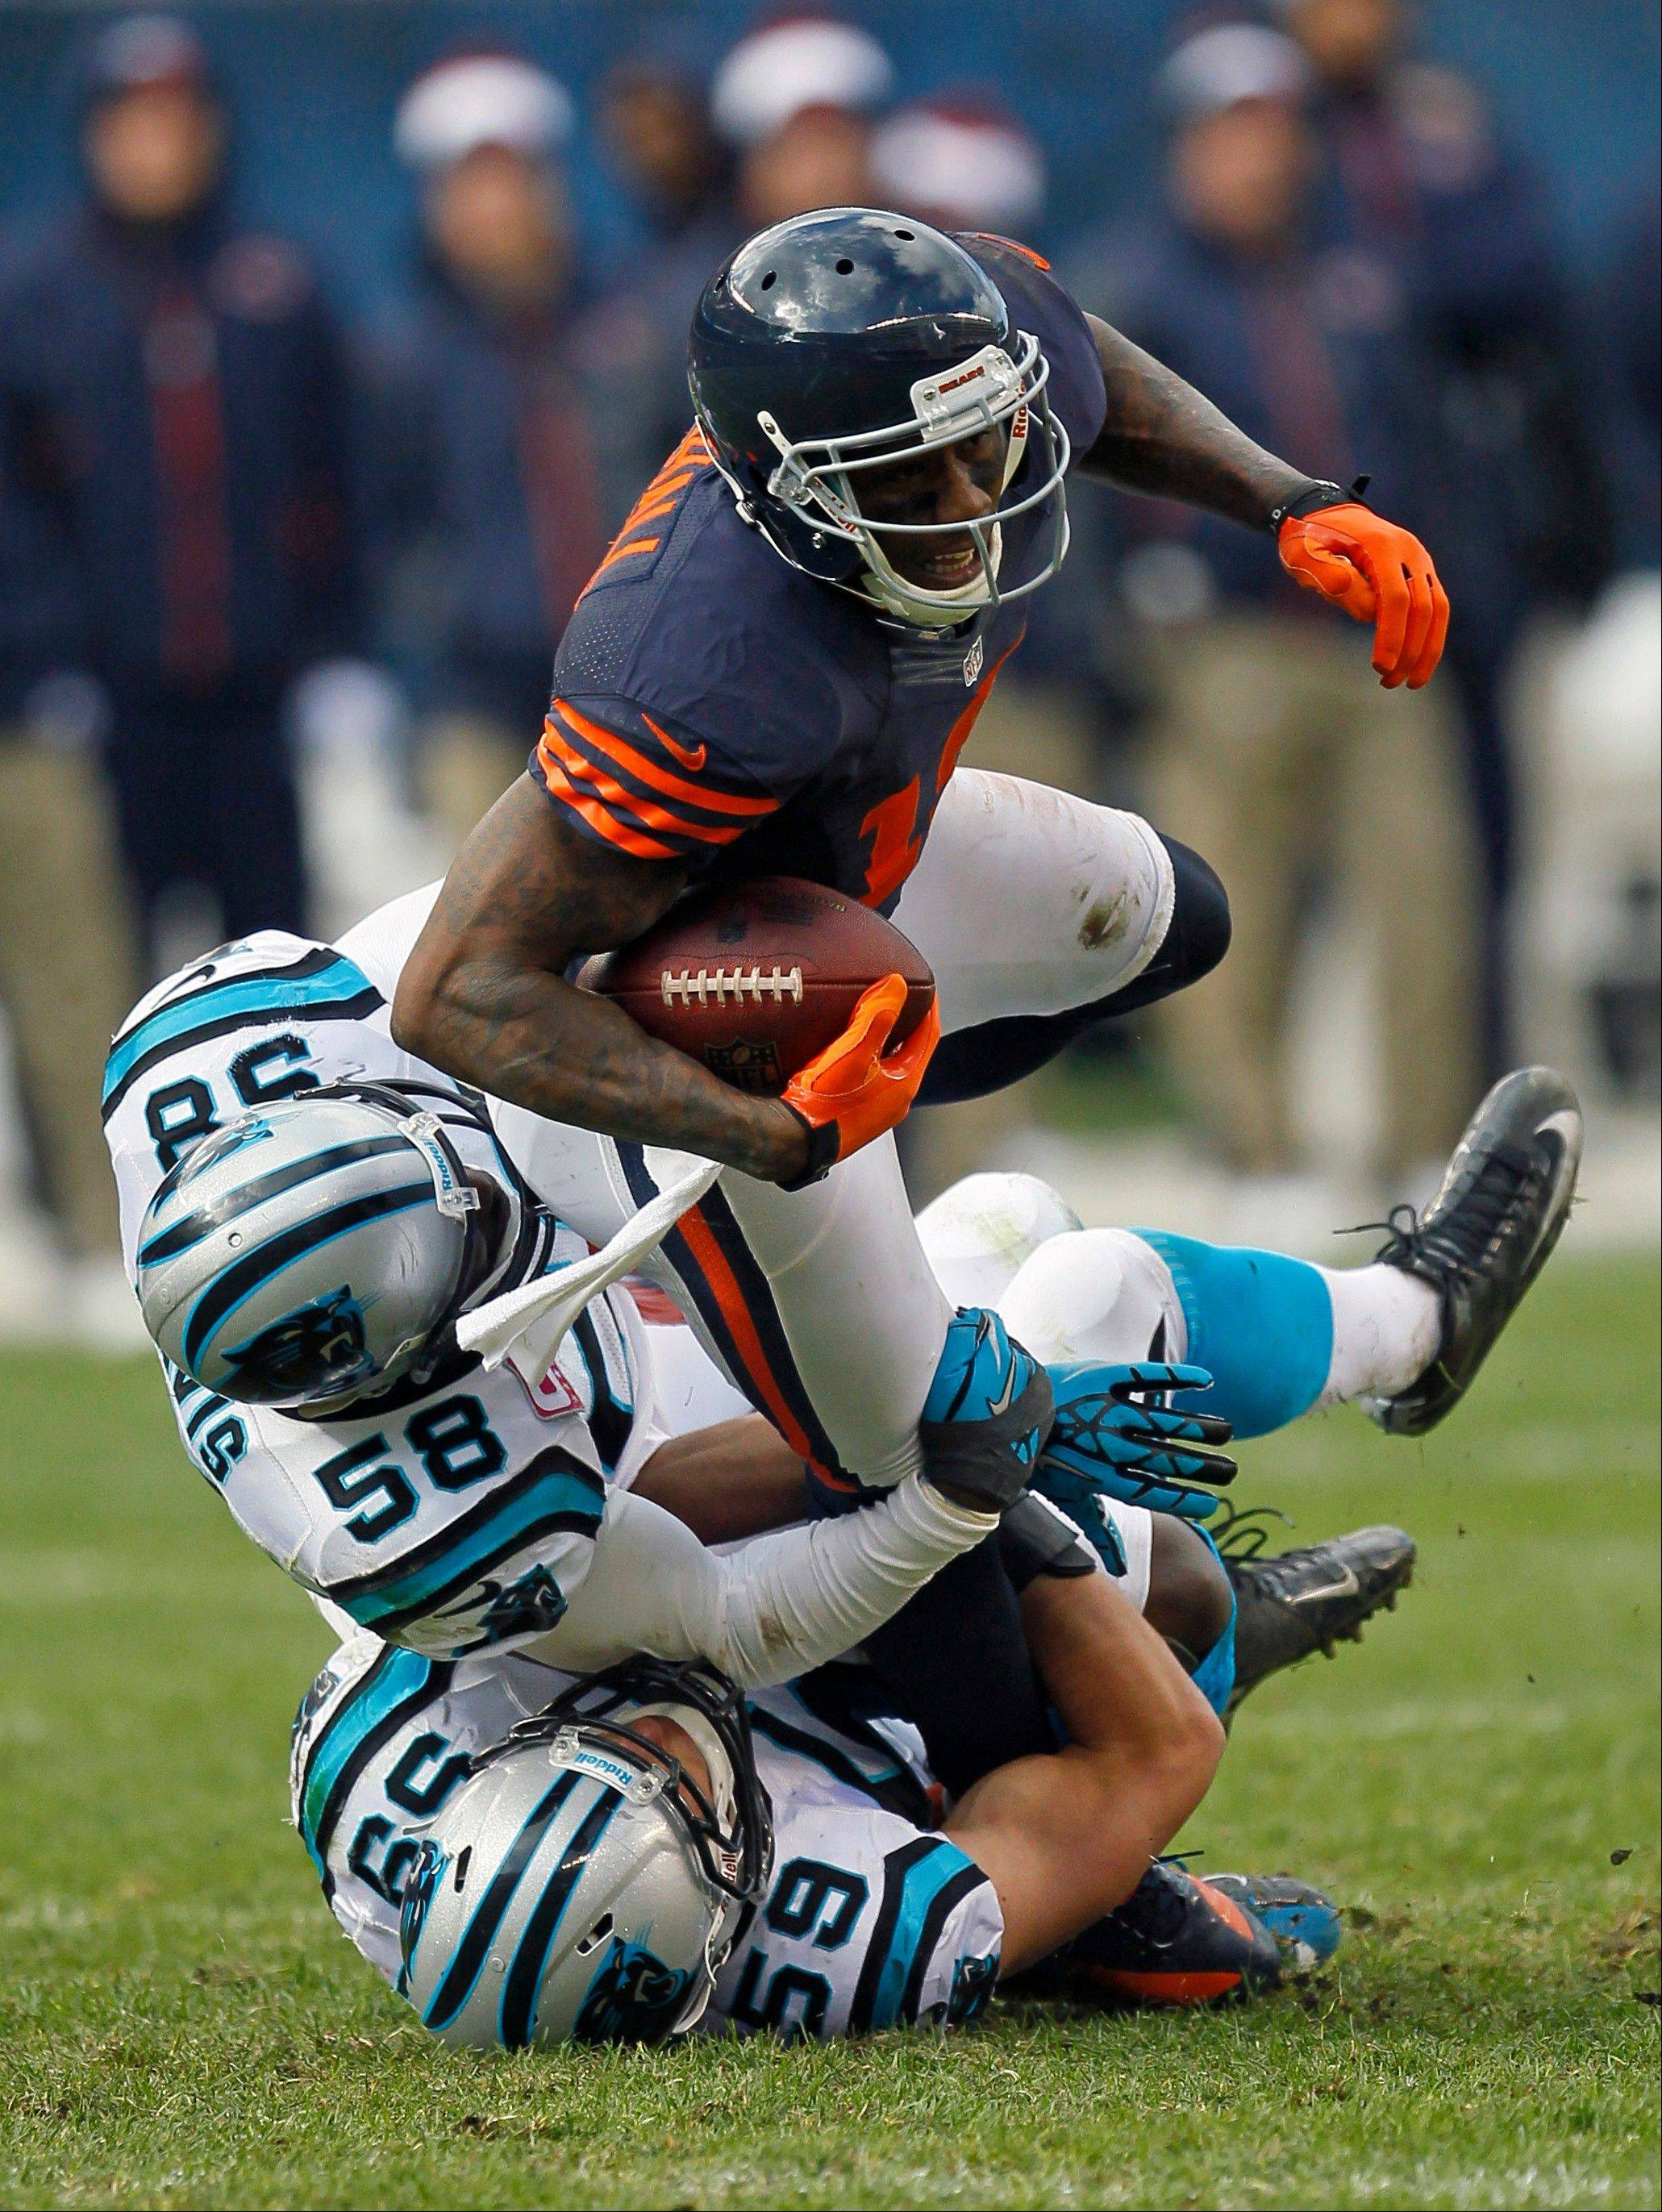 Bears wide receiver Brandon Marshall is tackled by Carolina Panthers linebackers Thomas Davis (58) and Luke Kuechly (59) Sunday after a reception during the second half.